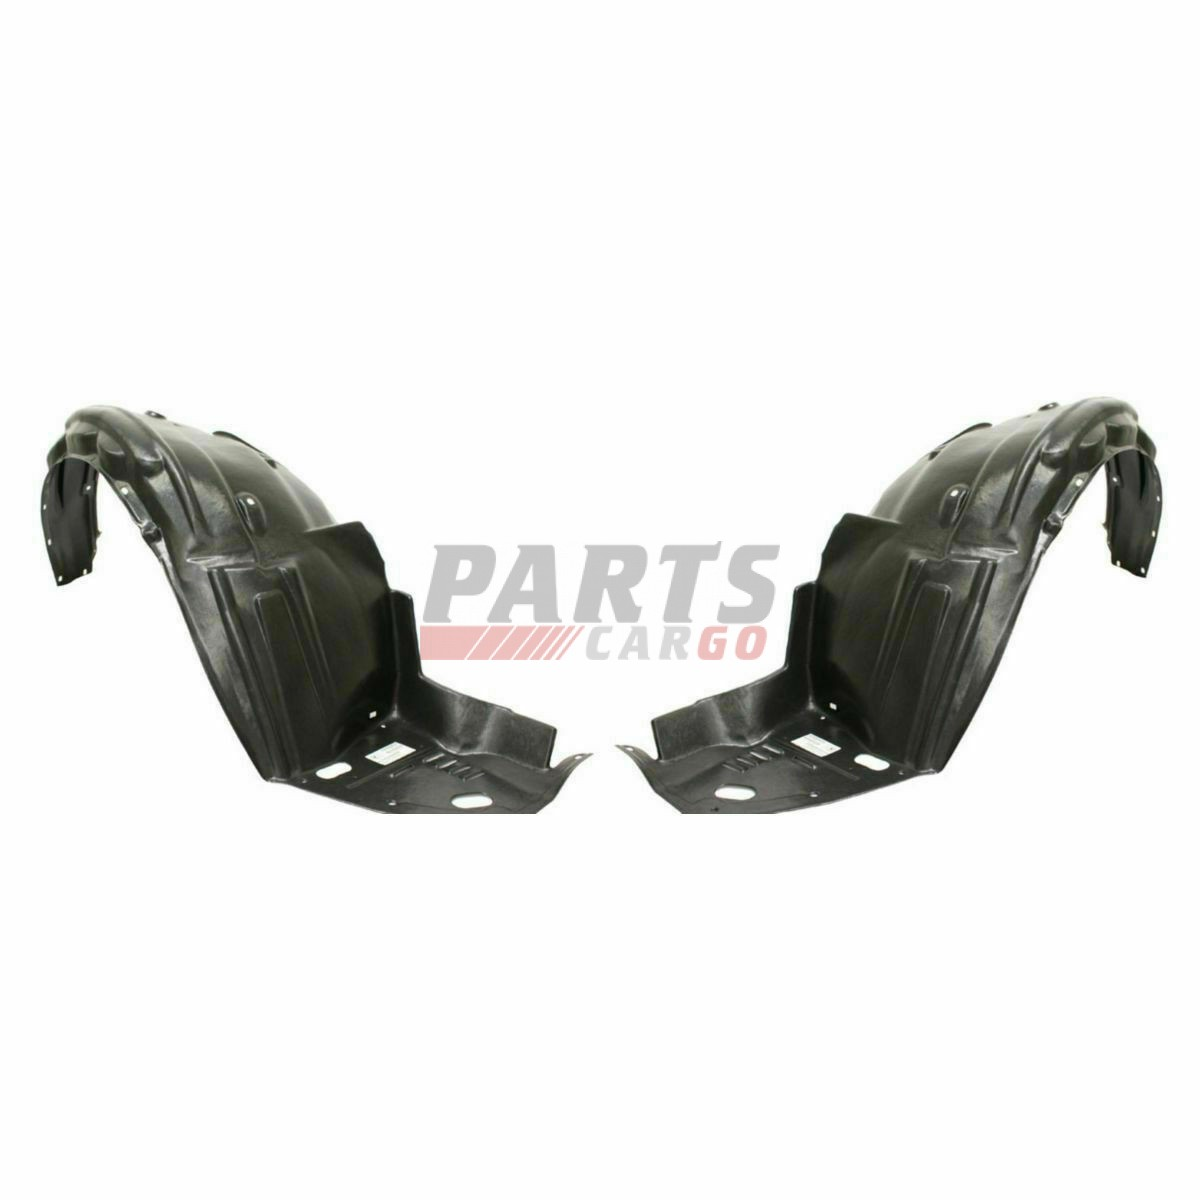 Front Right Passenger Side Fender Liner Fits 2008-2012 Honda Accord 74100TE0A00